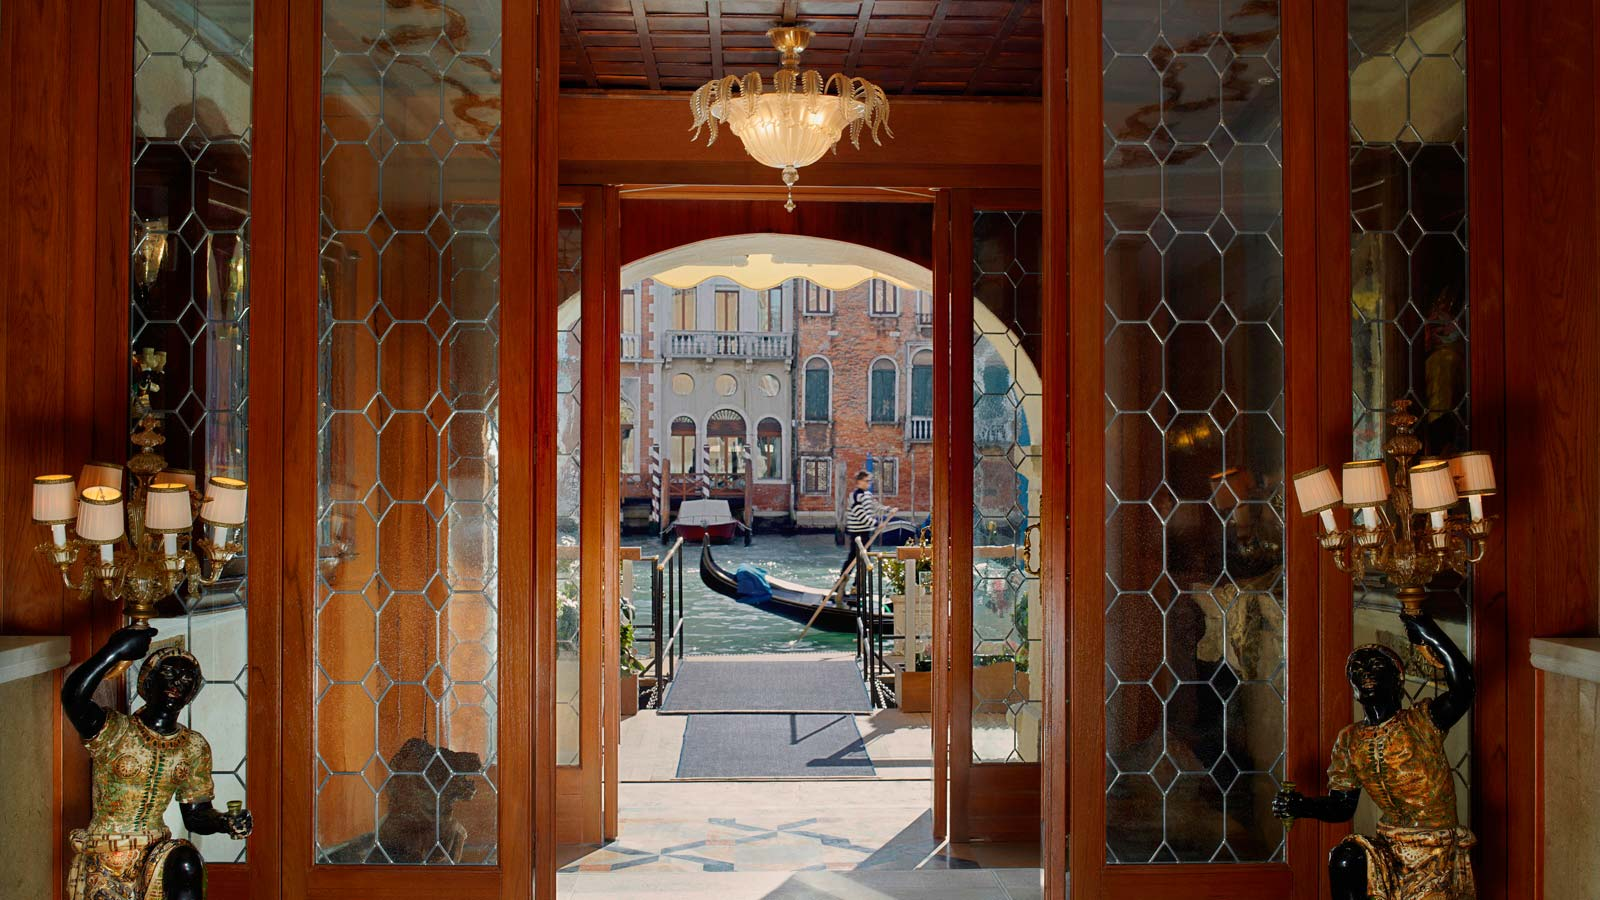 Gritti Palace in Venice Italy